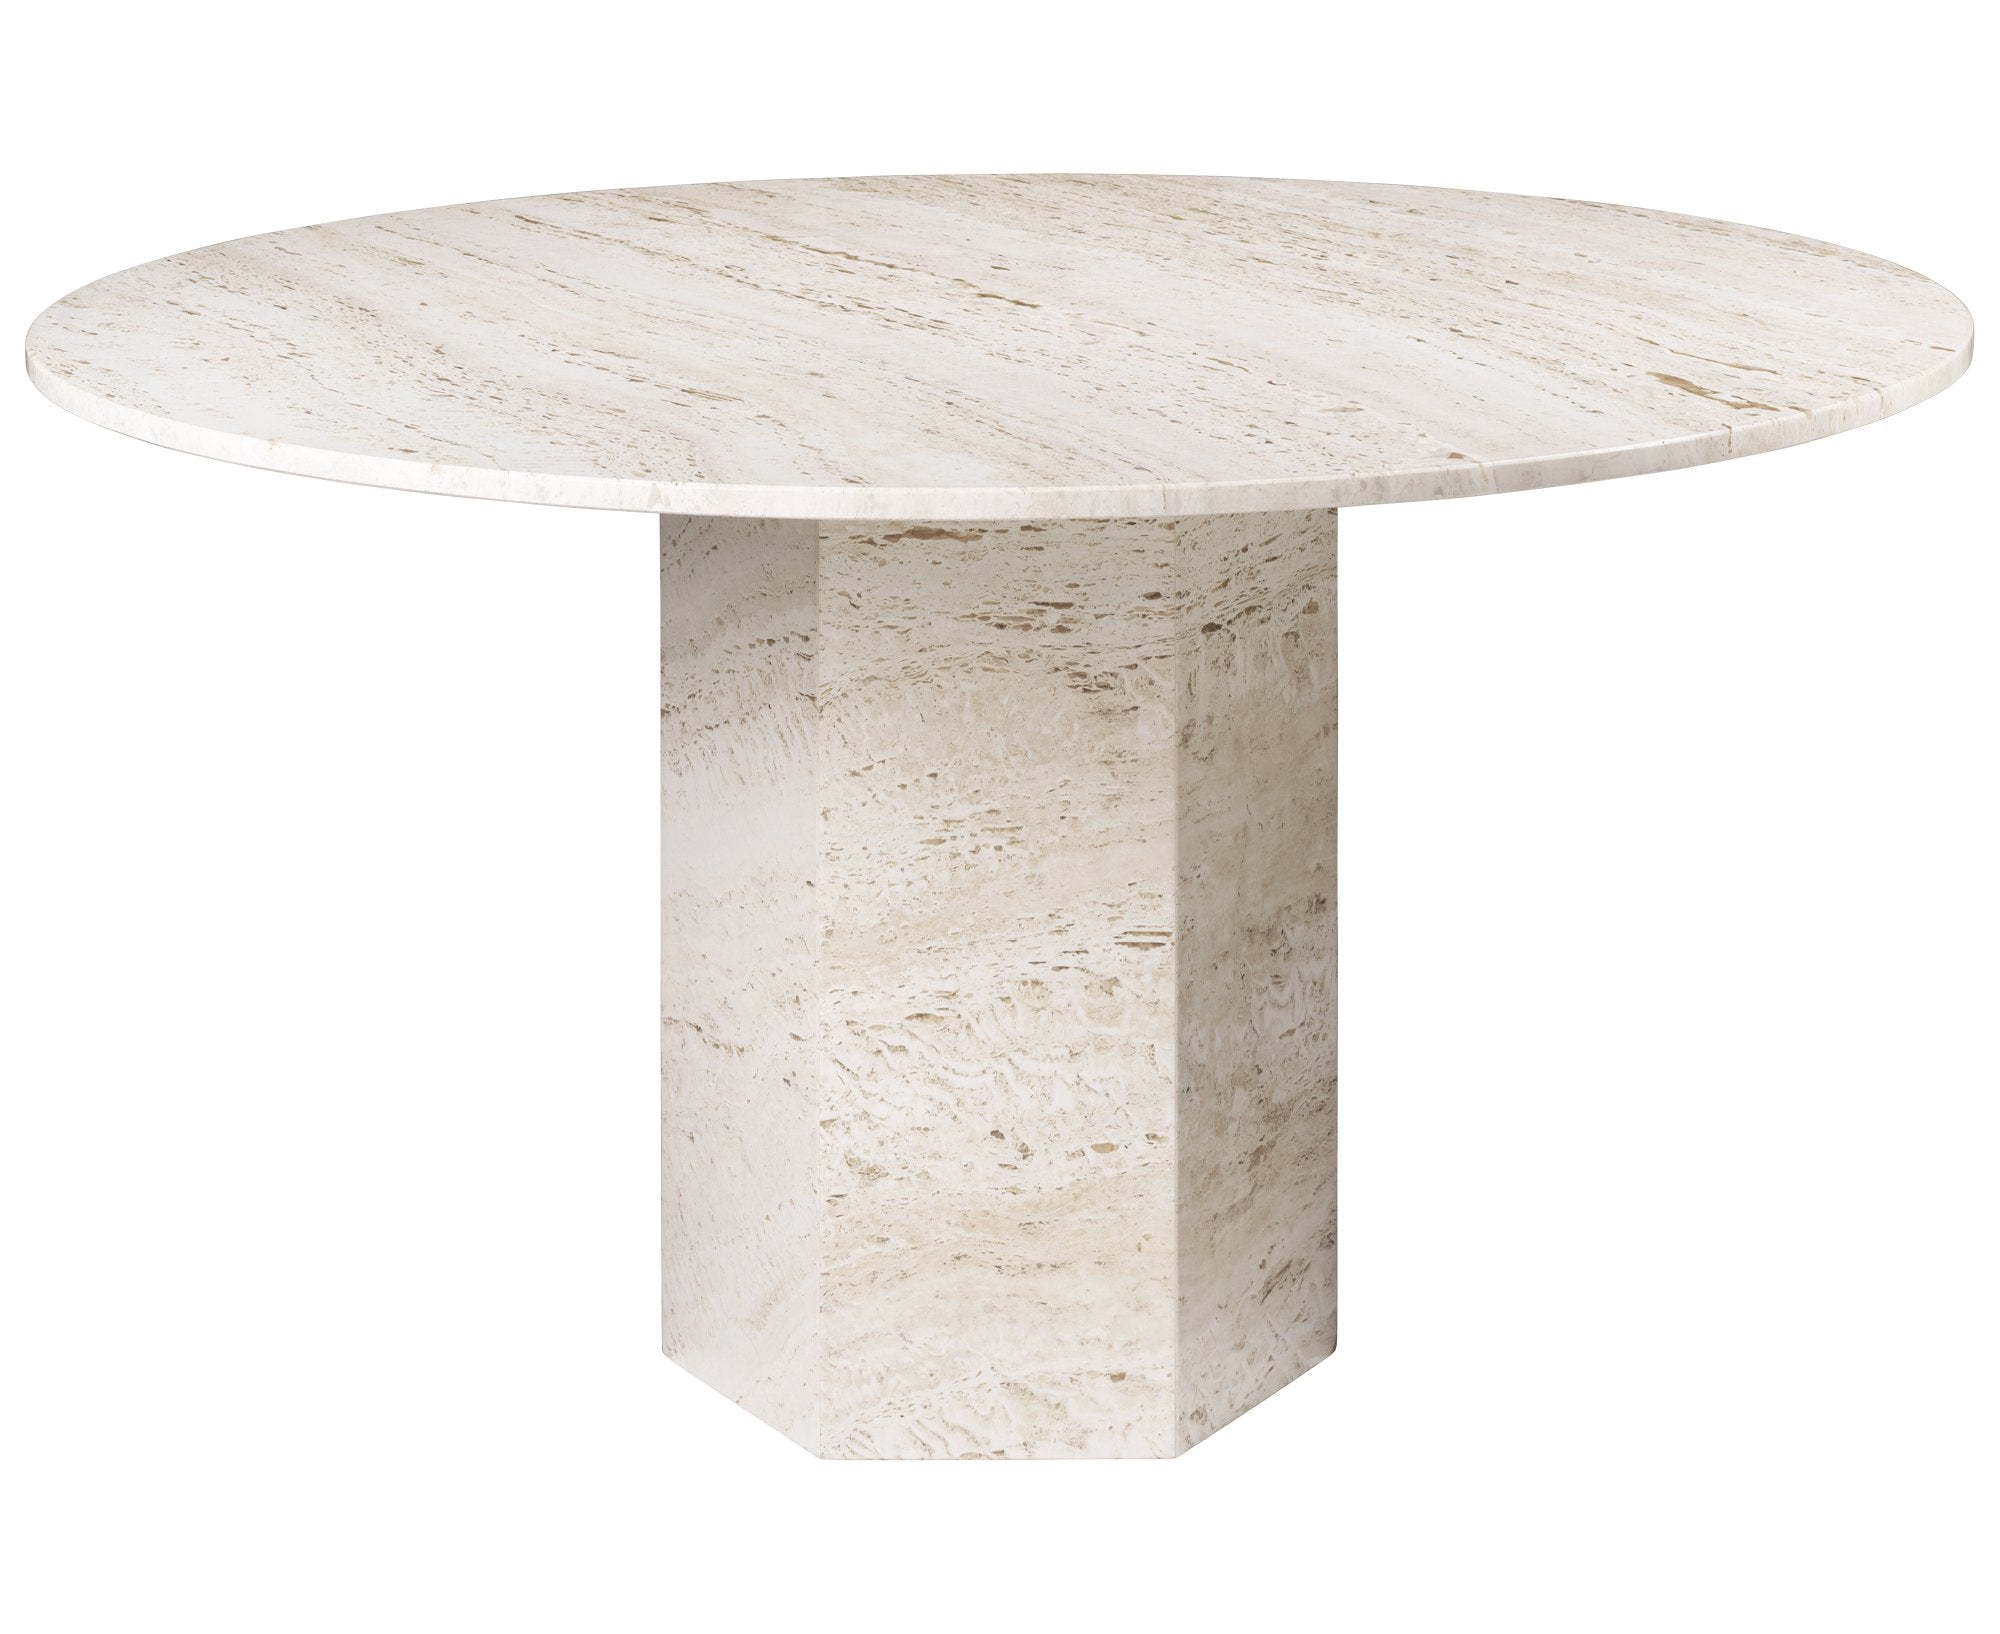 Epic Dining Table - Round Ø130